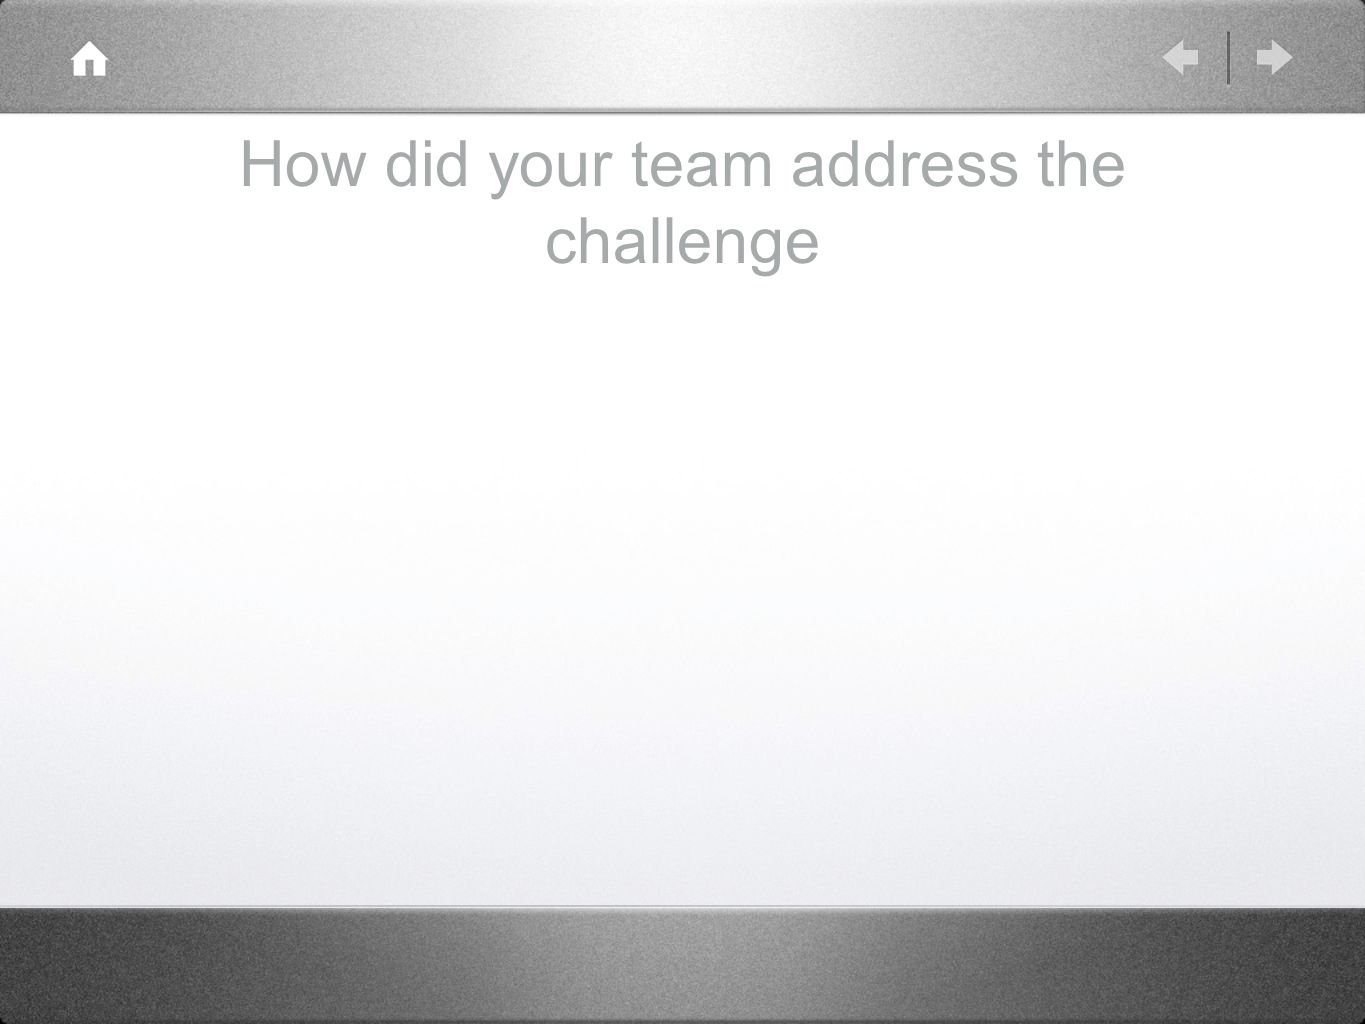 How did your team address the challenge